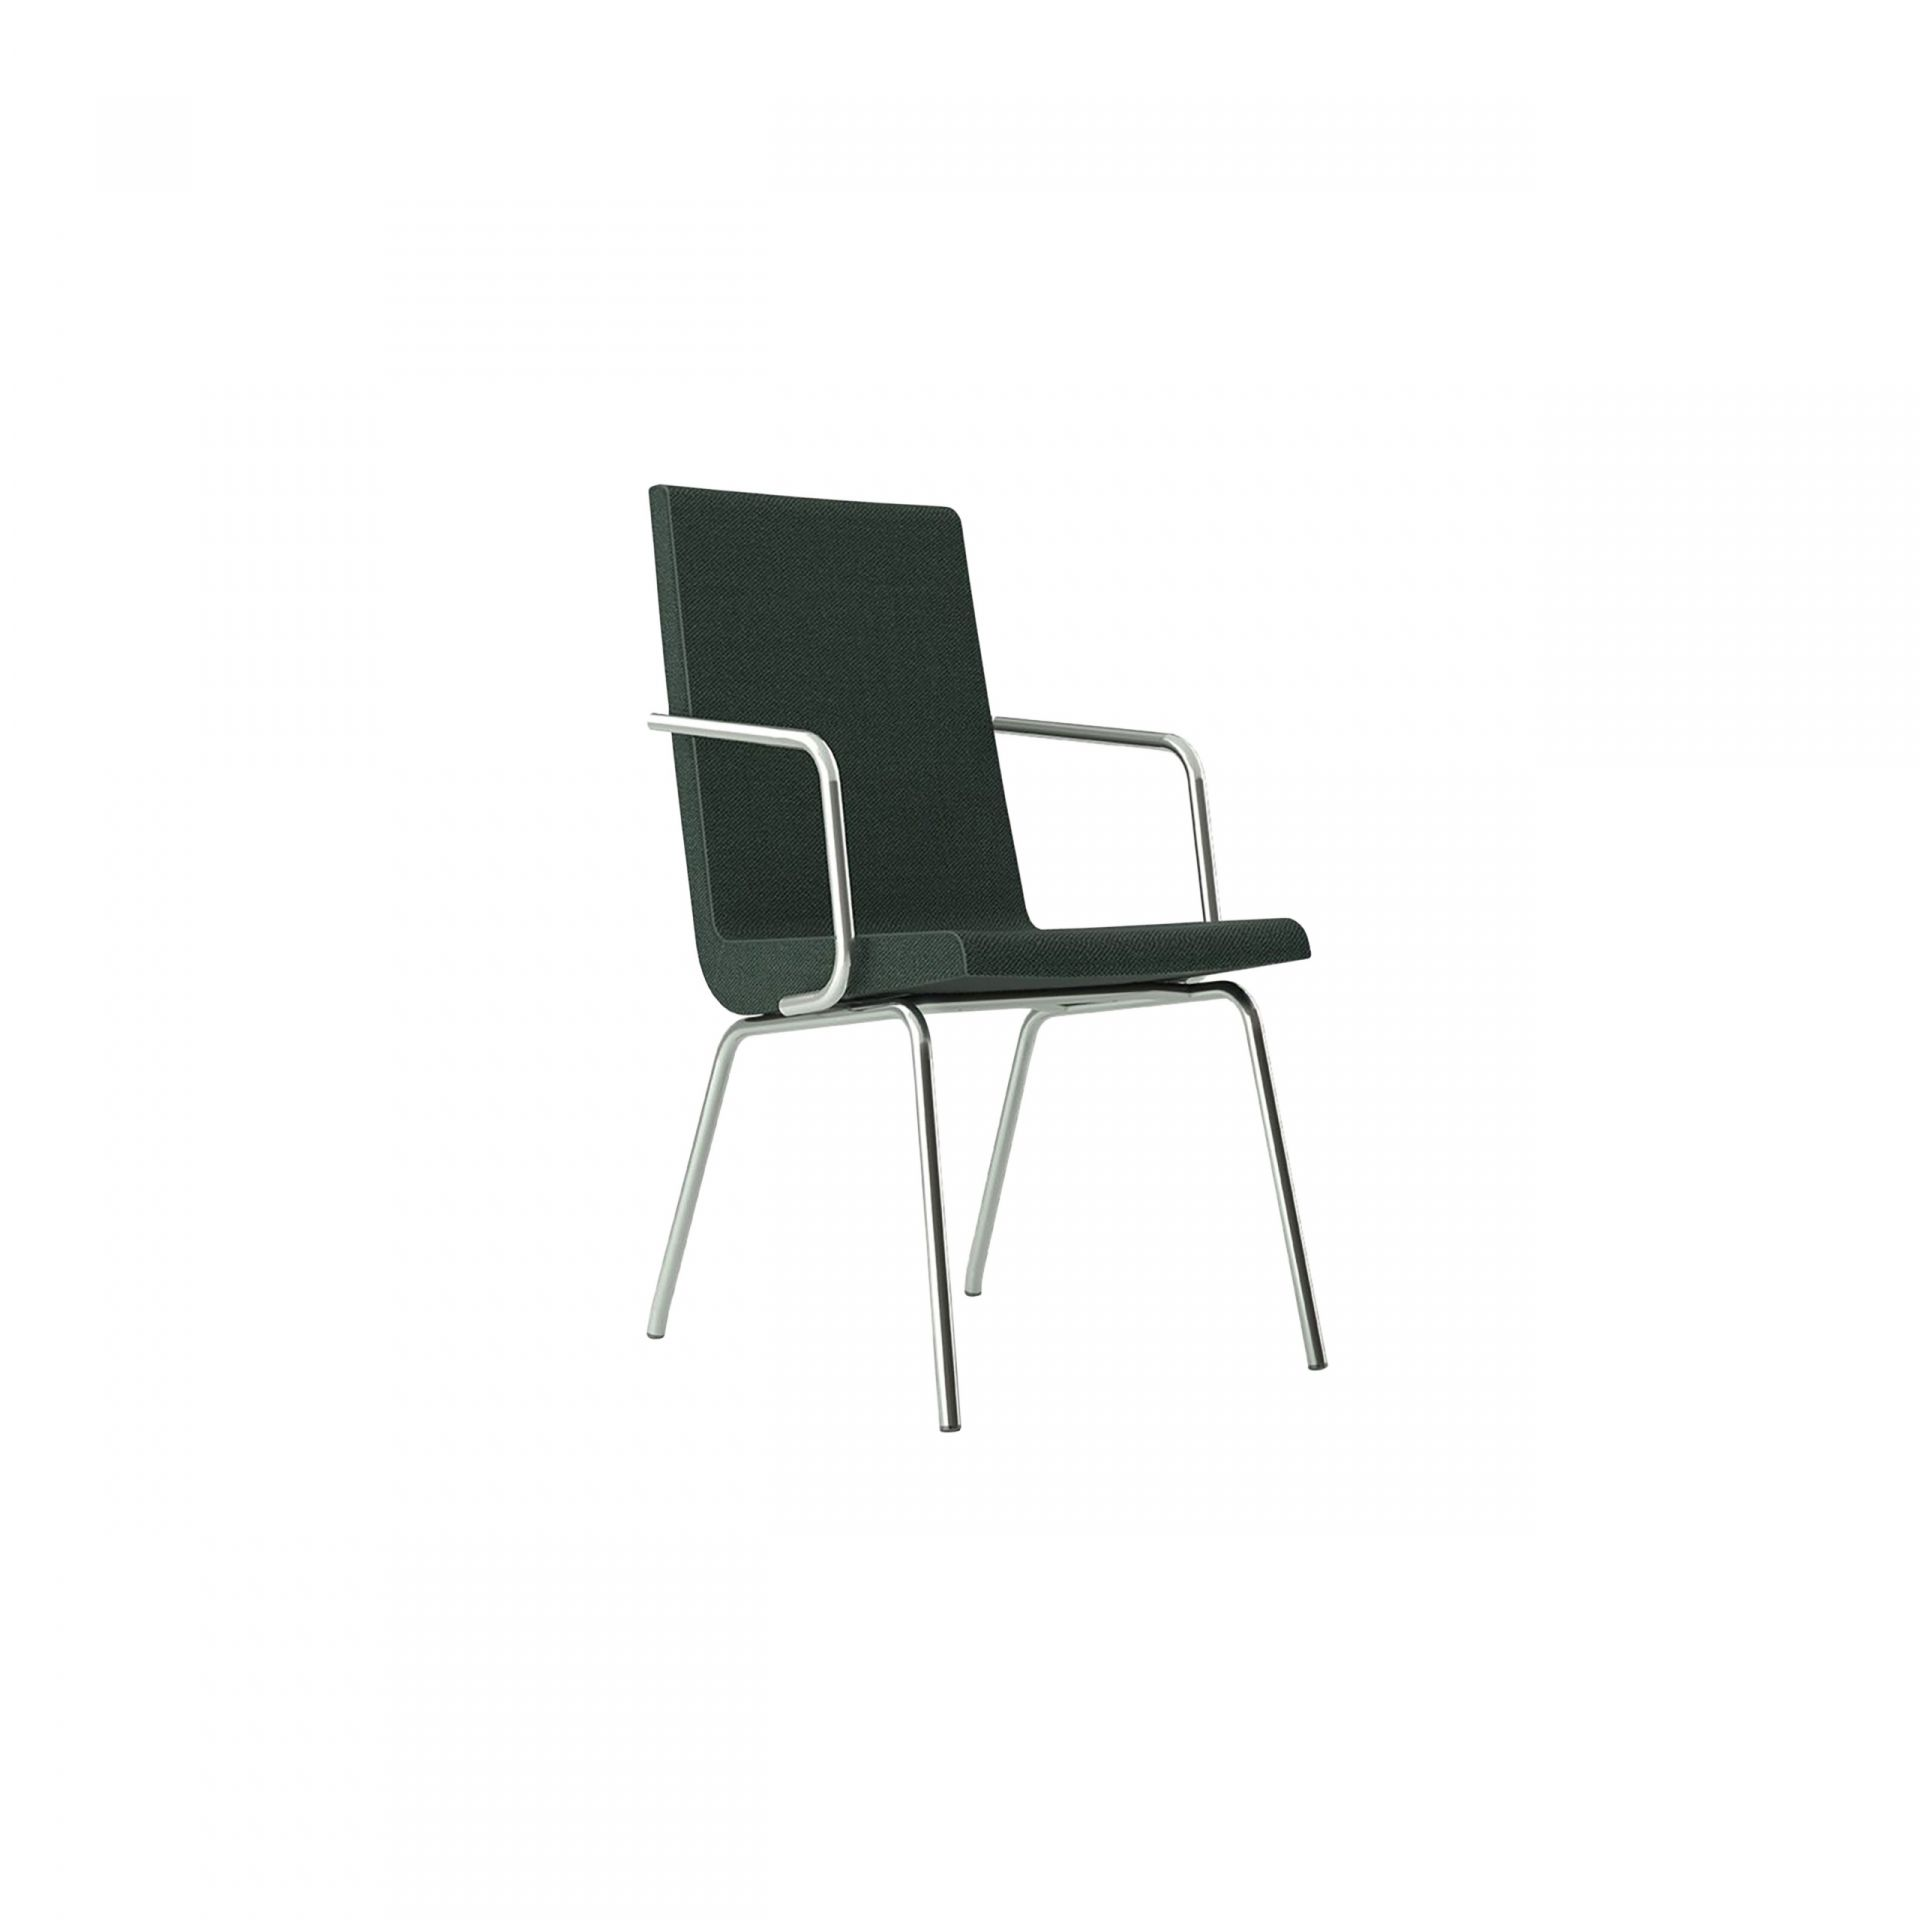 Woods Chair with metal legs product image 2